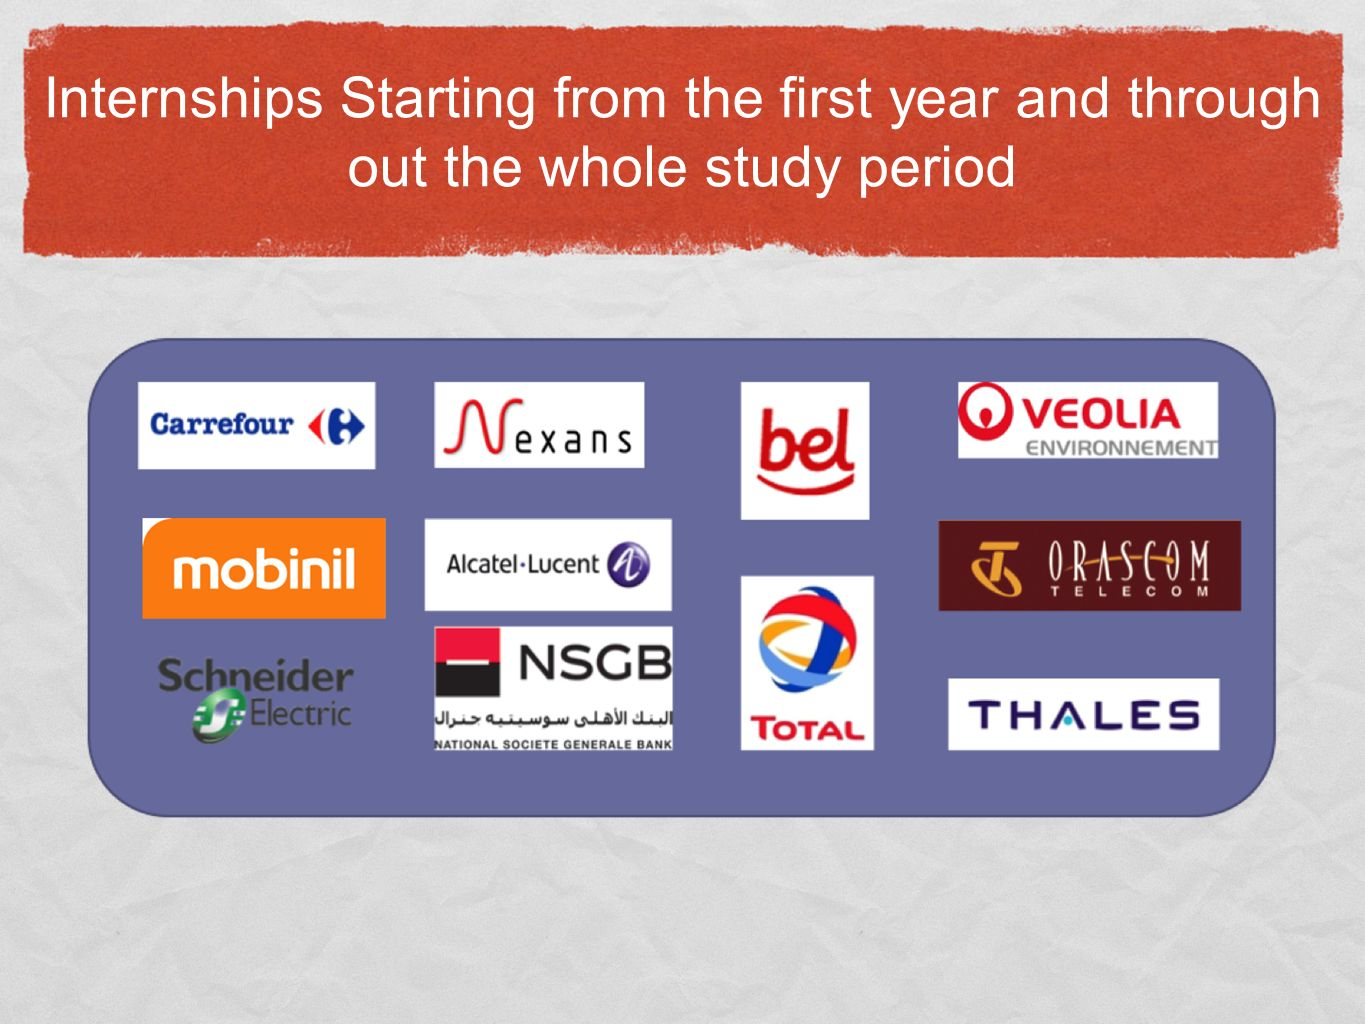 Internships Starting from the first year and through out the whole study period